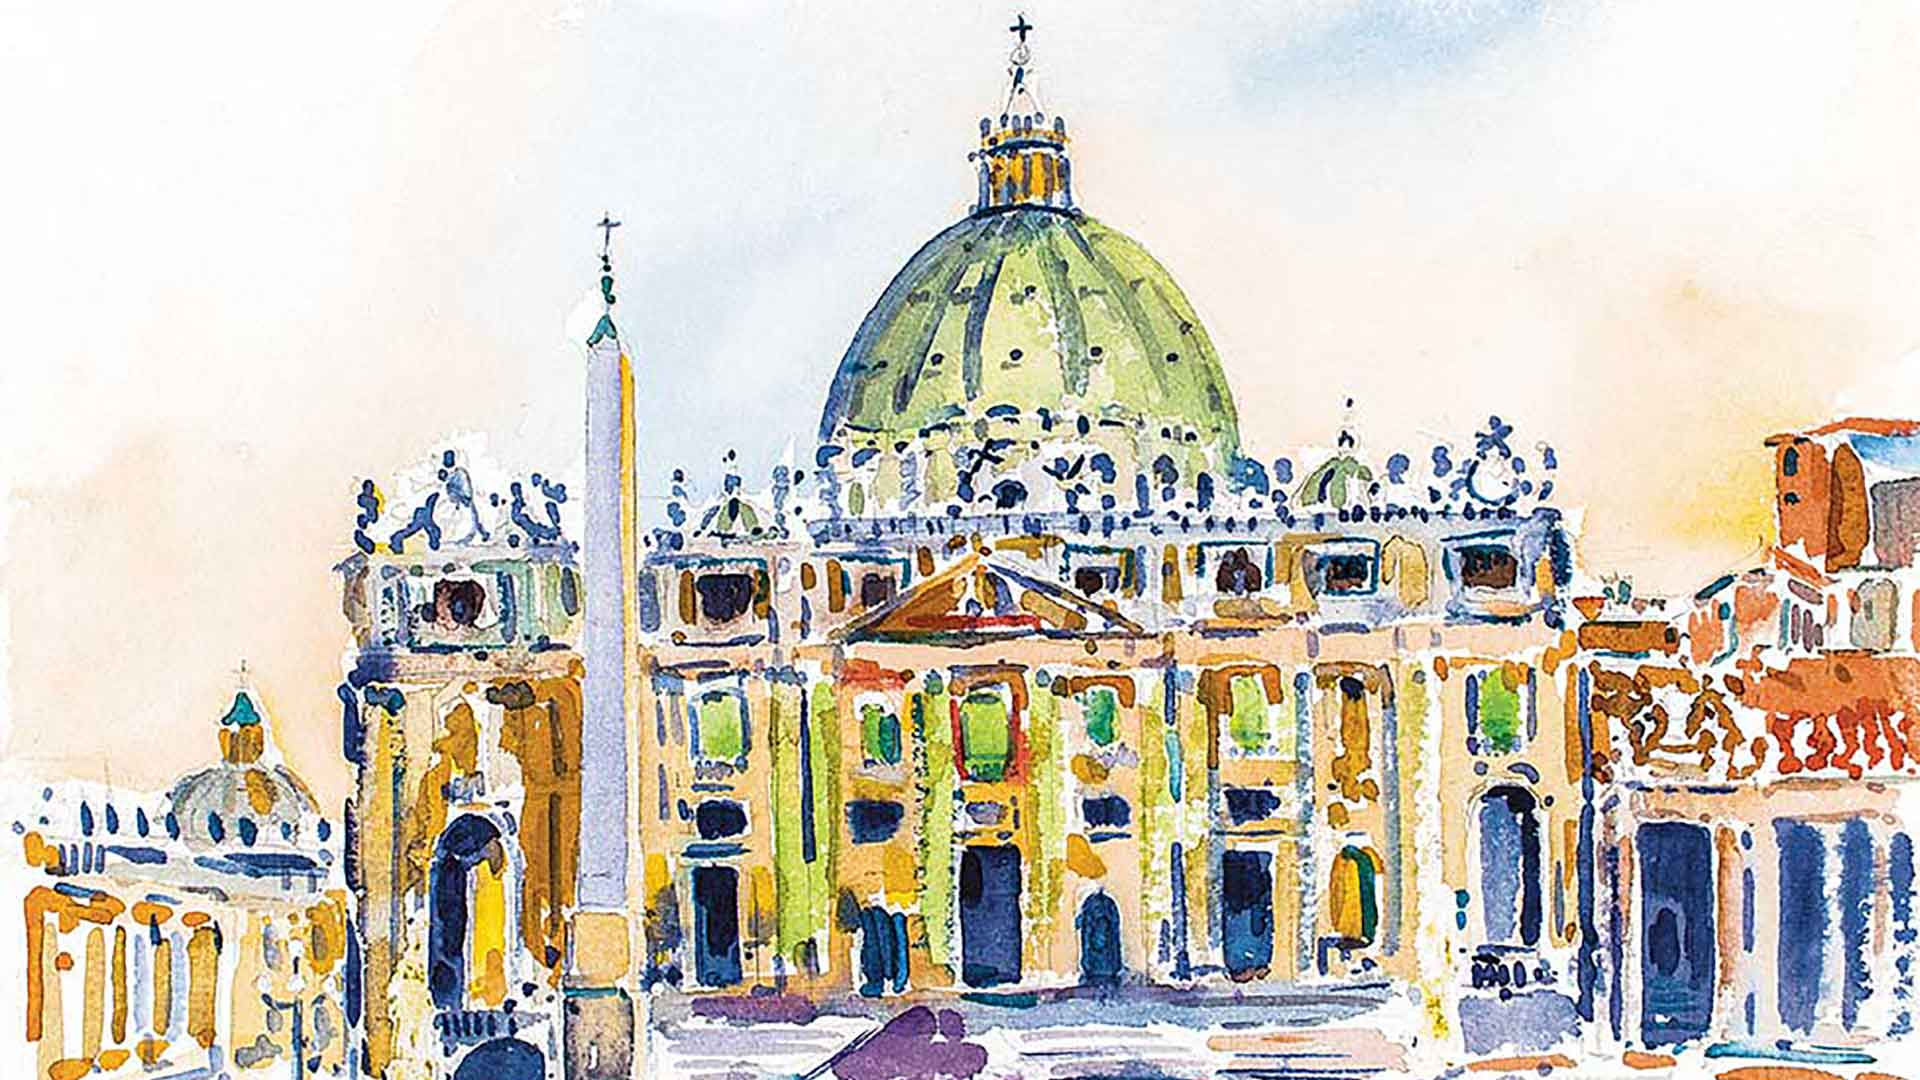 Watercolor of St. Peter's Cathedral in Rome painted by Father Richard Cannuli